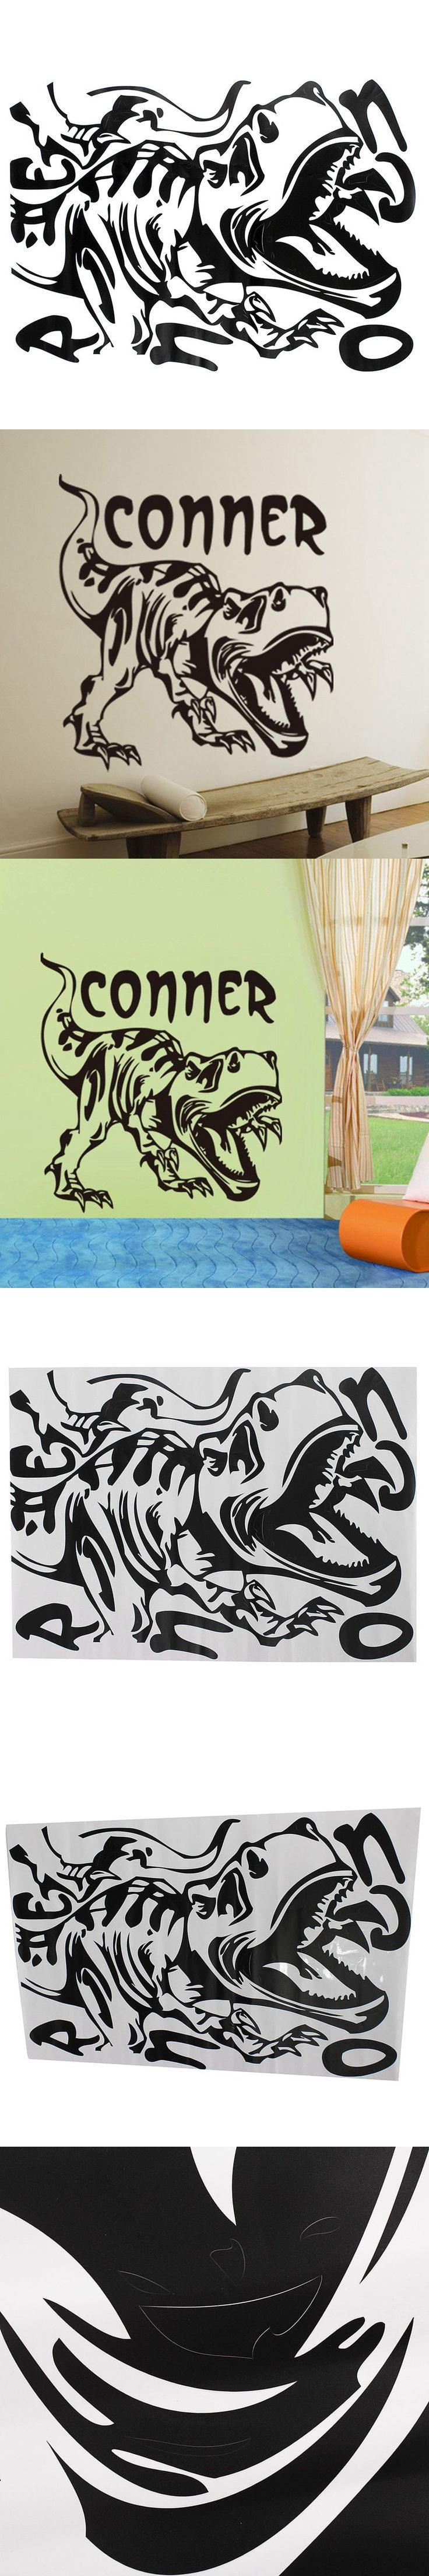 25 best ideas about dinosaur wall stickers on pinterest for Dinosaur mural ideas